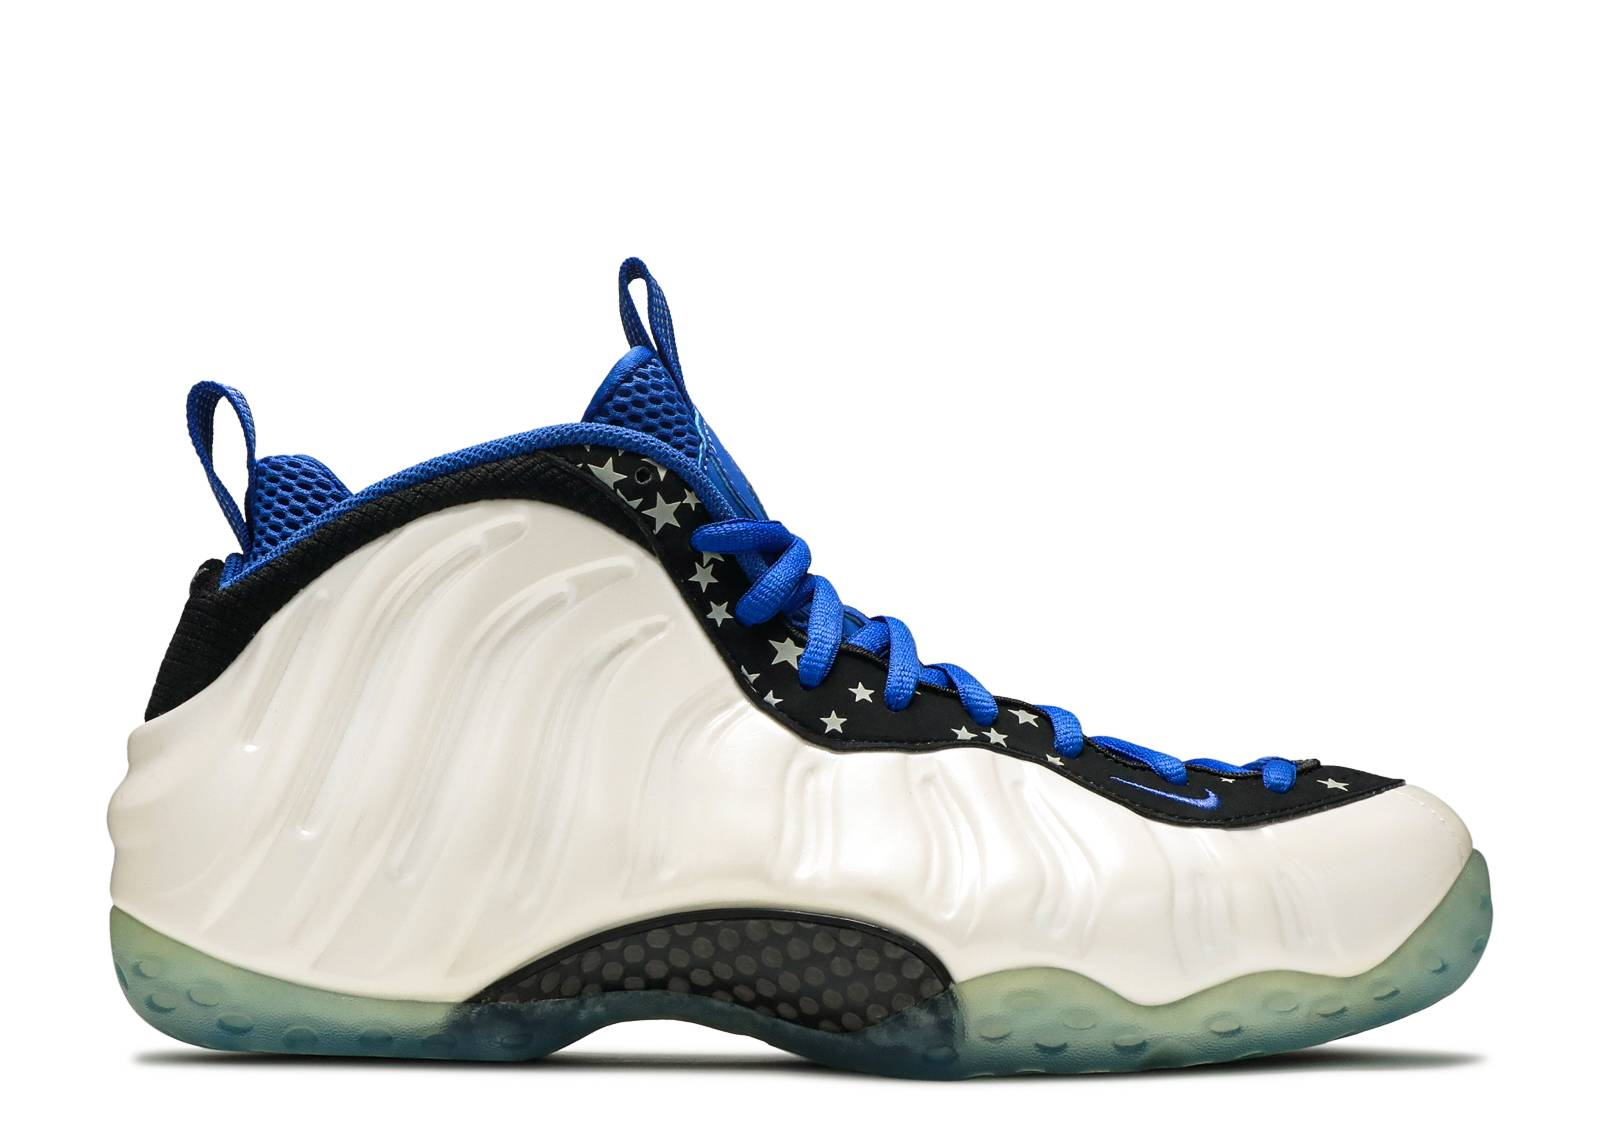 358ee8d8b87 Air Foamposite One